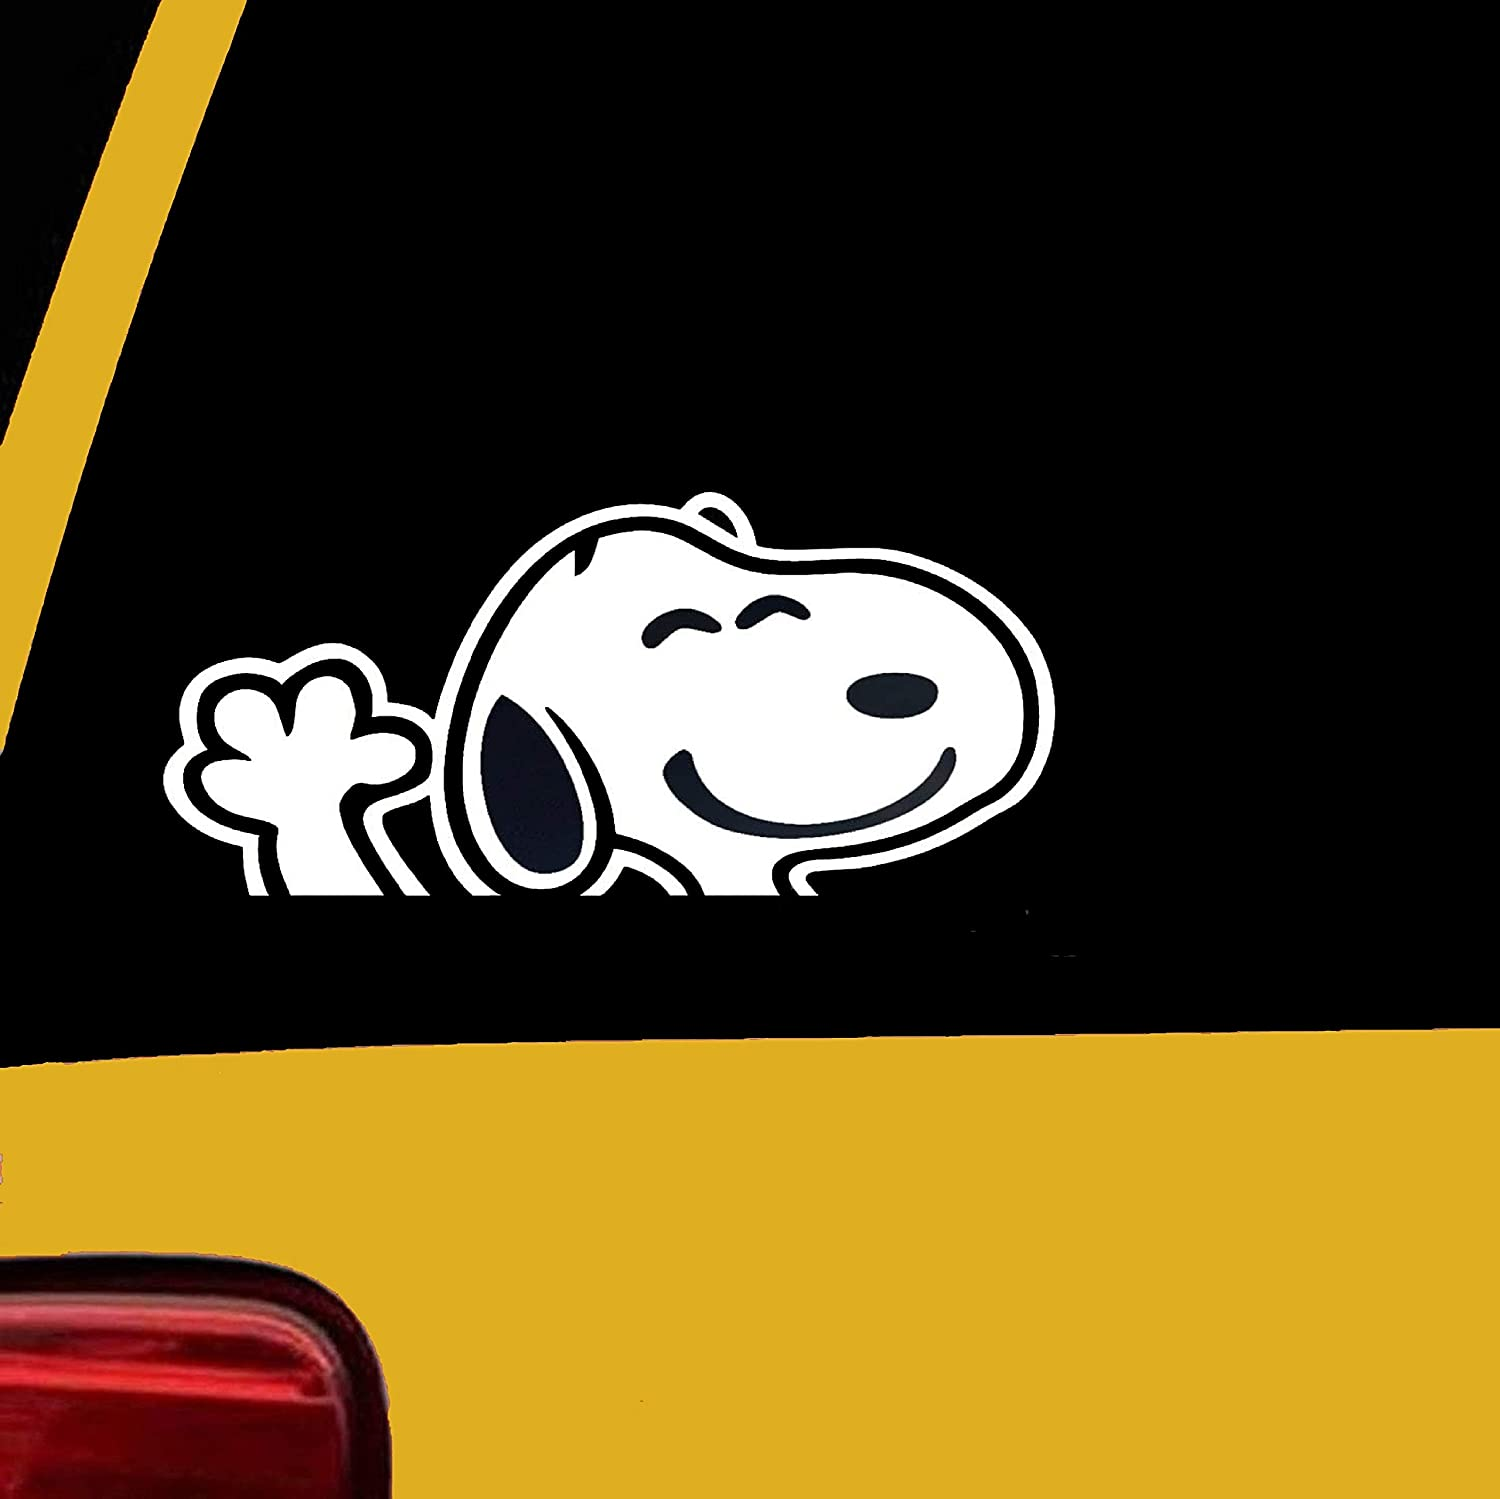 Rainbow Animated Design Snoopy Waving Decal Vinyl Sticker Graphics for Cars Trucks SUV Vans Walls Windows Laptop 5.5 Inches White